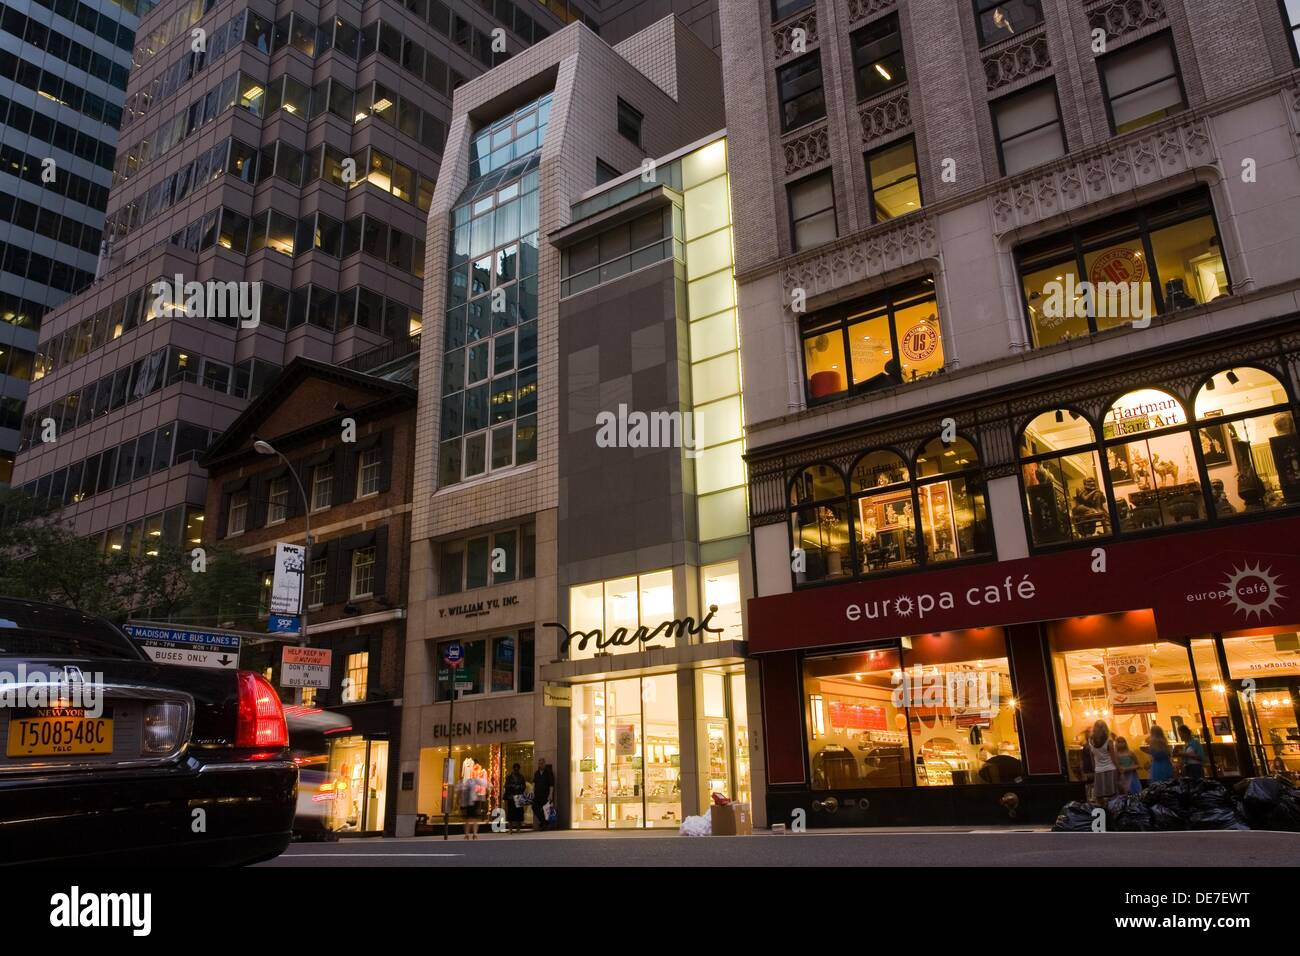 Marmi Shoes Shop Madison Avenue E 53rd Street Midtown Manhattan Stock Photo Alamy New marmi shoes coupons are published approximately every 30 days days. https www alamy com marmi shoes shop madison avenue e 53rd street midtown manhattan new image60401652 html